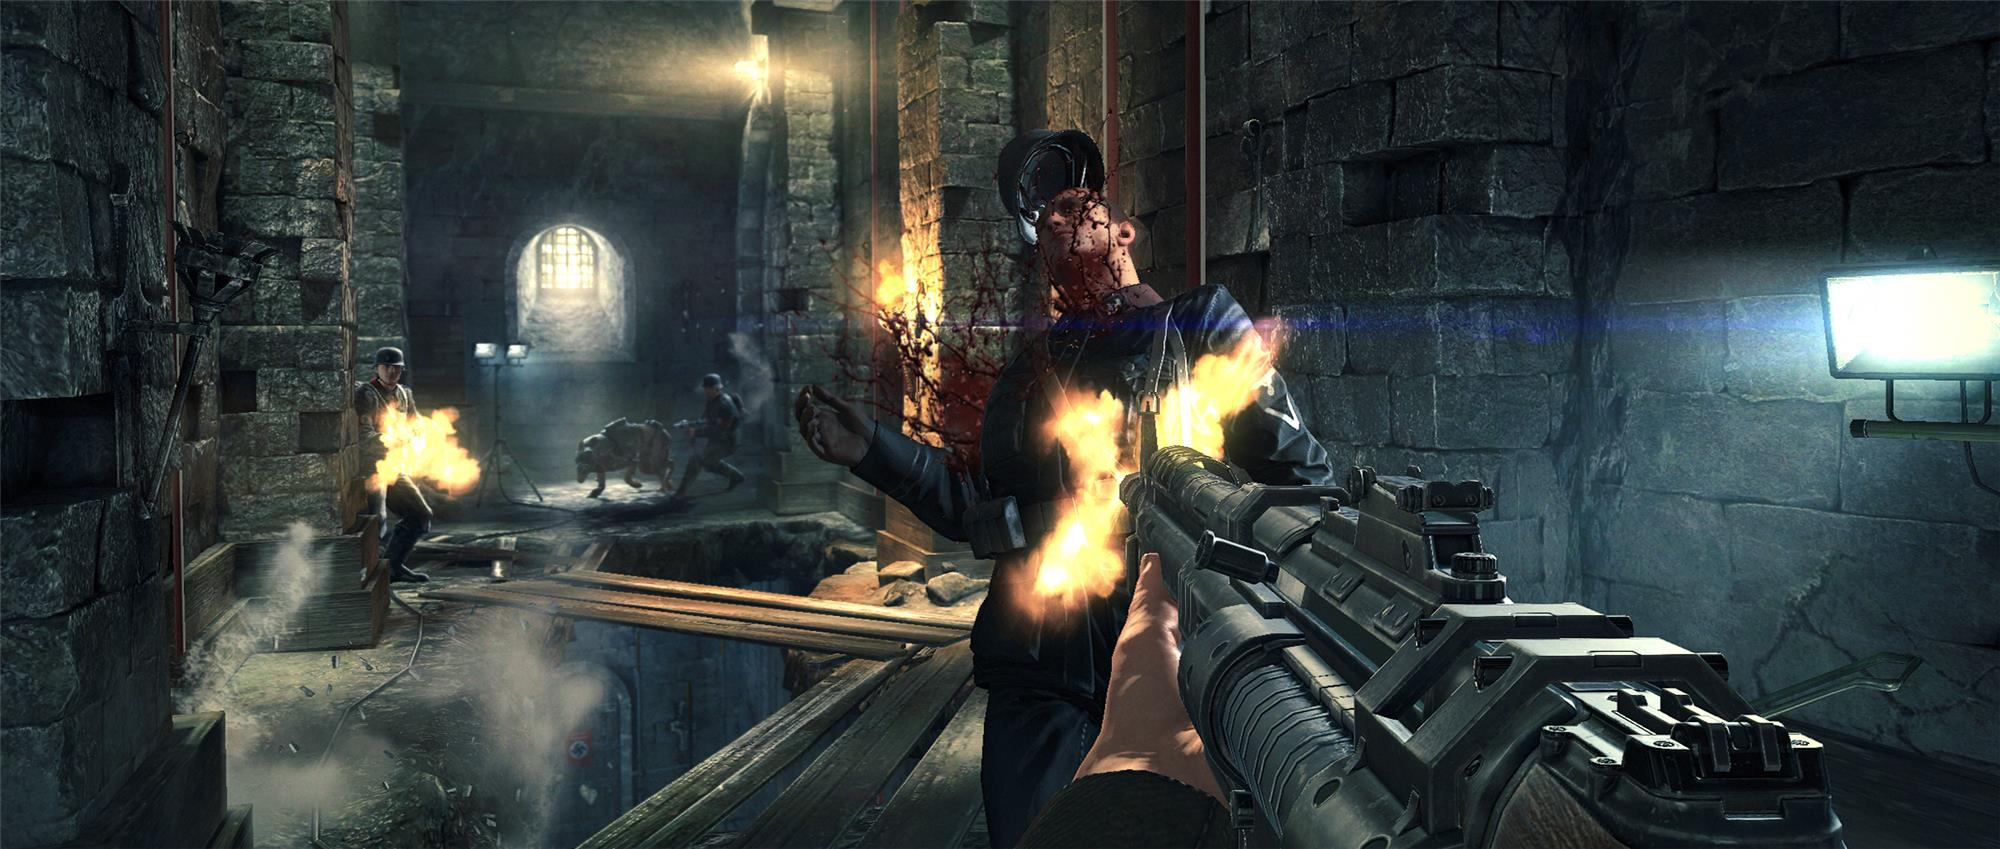 Wolfenstein: The New Order New Images Released